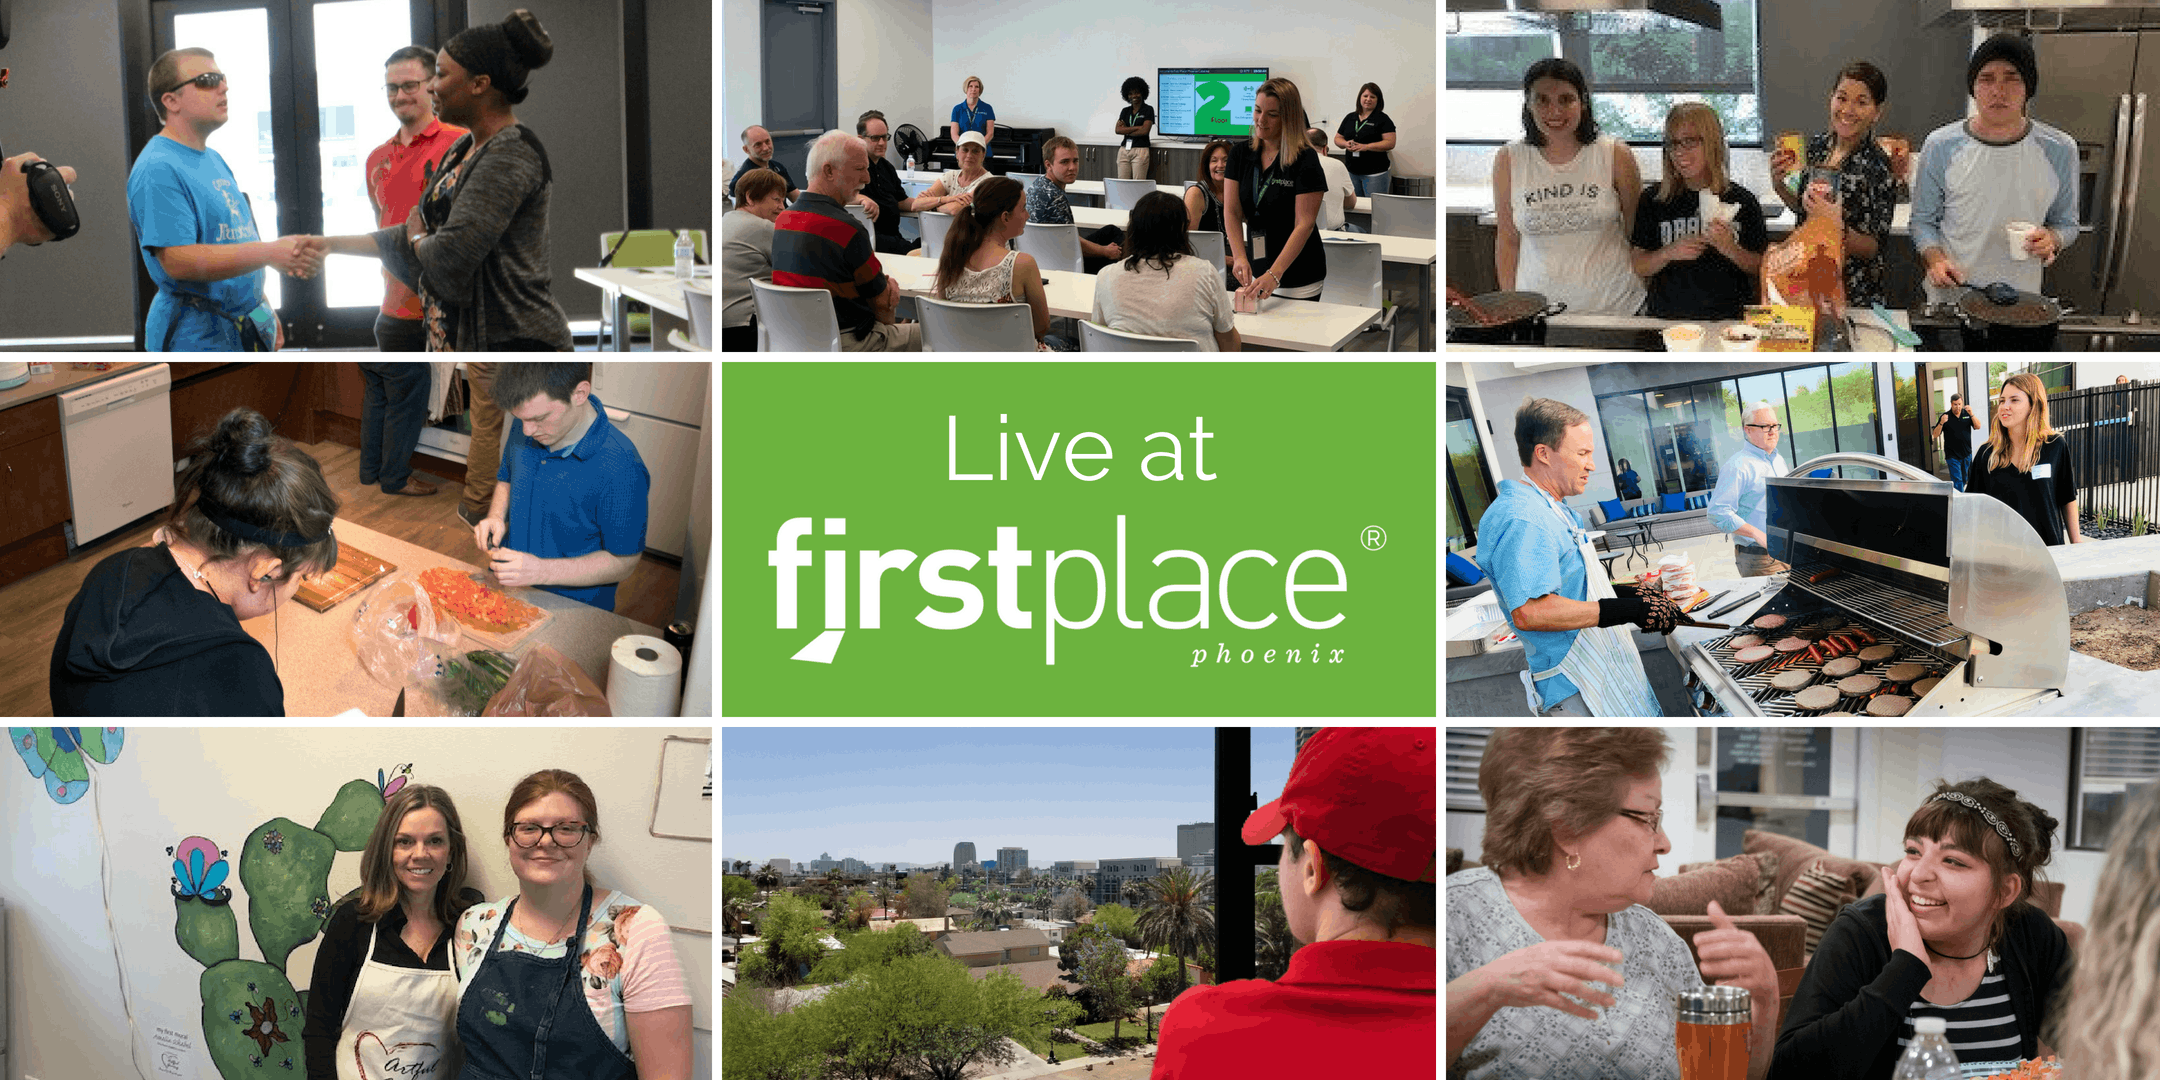 Explore First Place–Phoenix - October 25